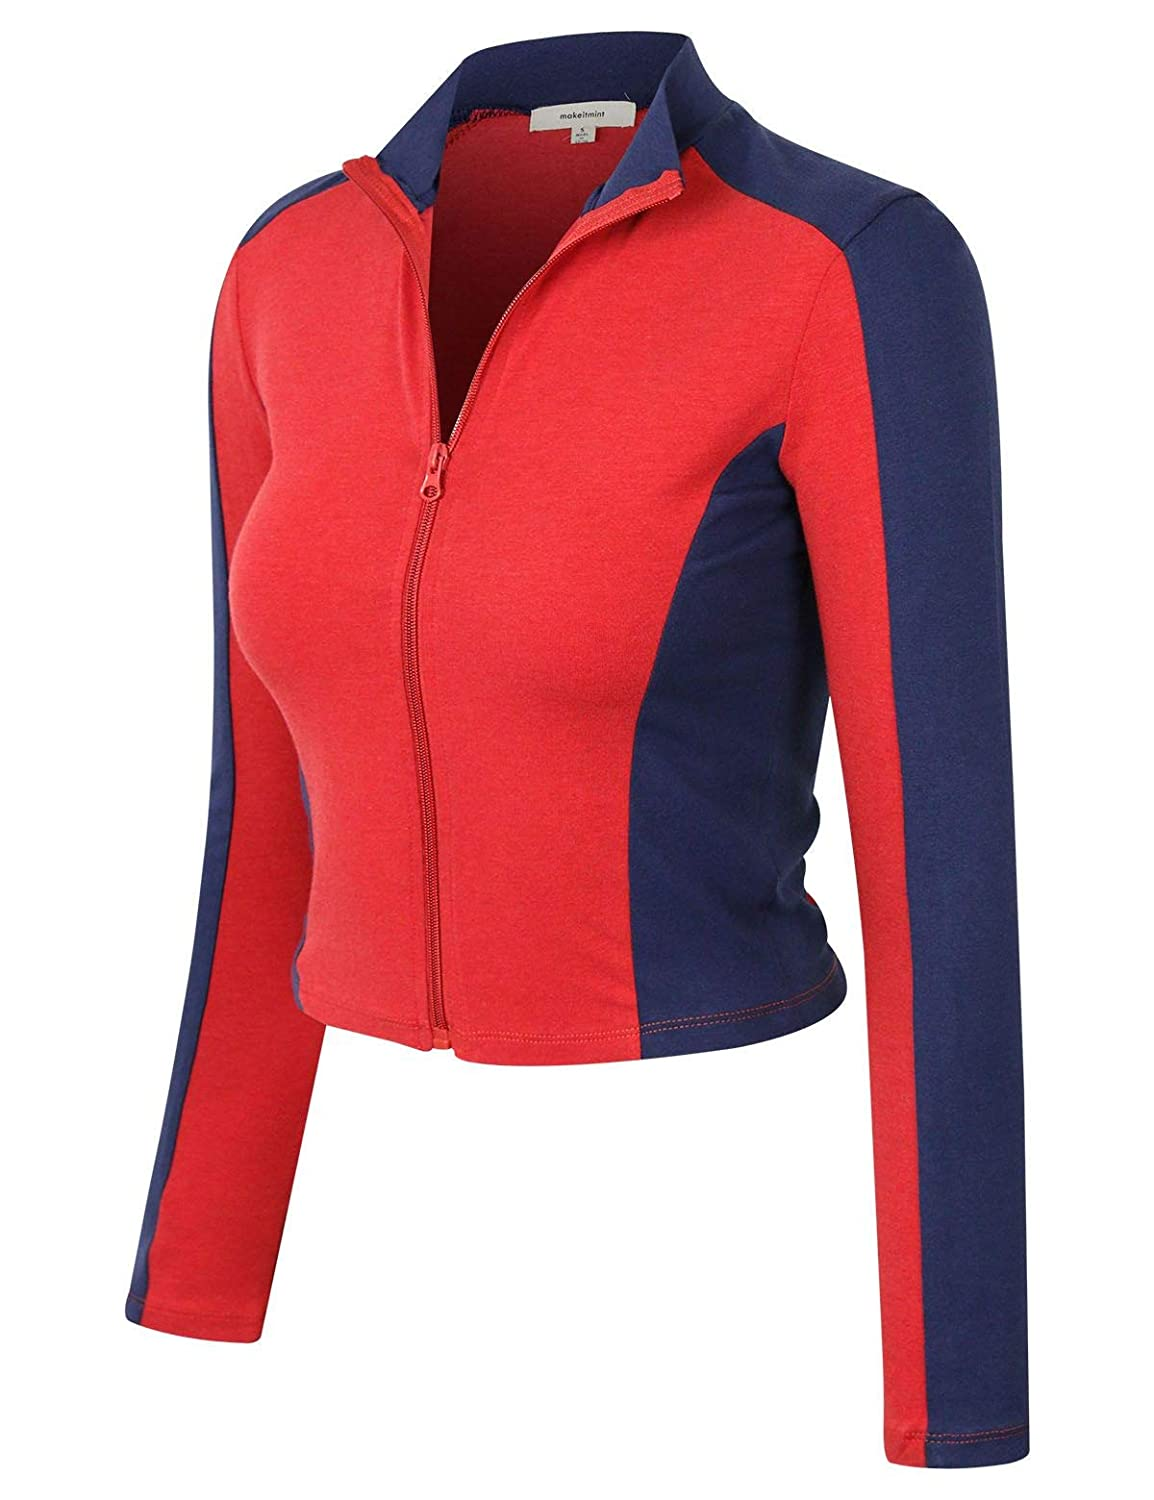 makeitmint Womens Comfy Zip Up Thin Breathable Yoga Gym Work Out Track Jacket YJZ0080-RED-MED